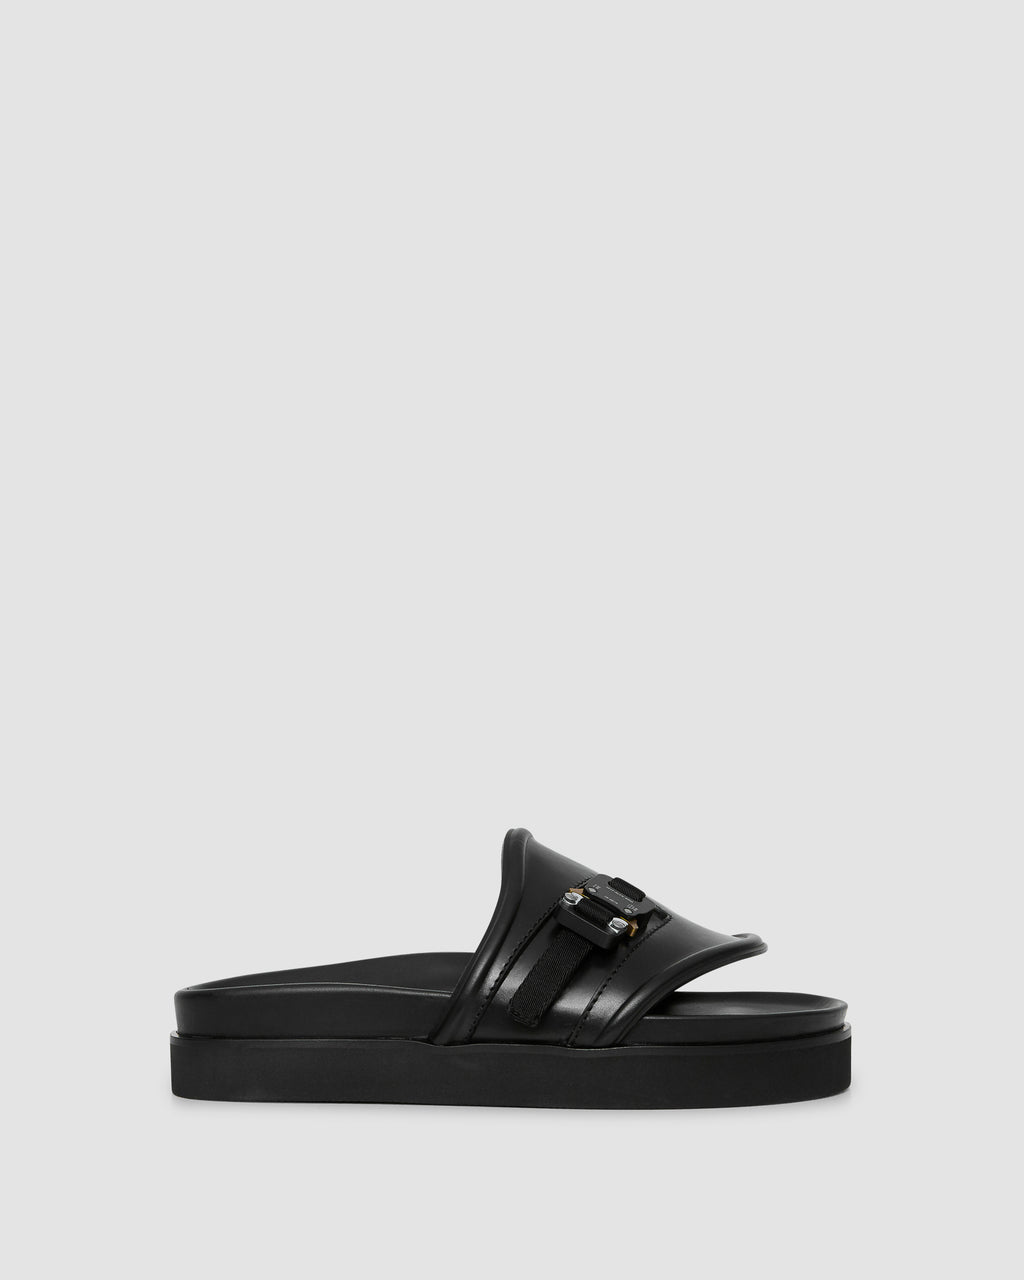 1017 ALYX 9SM | SLIDES | Shoe | BLACK, Google Shopping, Man, S20, S20 Drop II, Shoes, SLIDES & THONGS, UNISEX, Woman